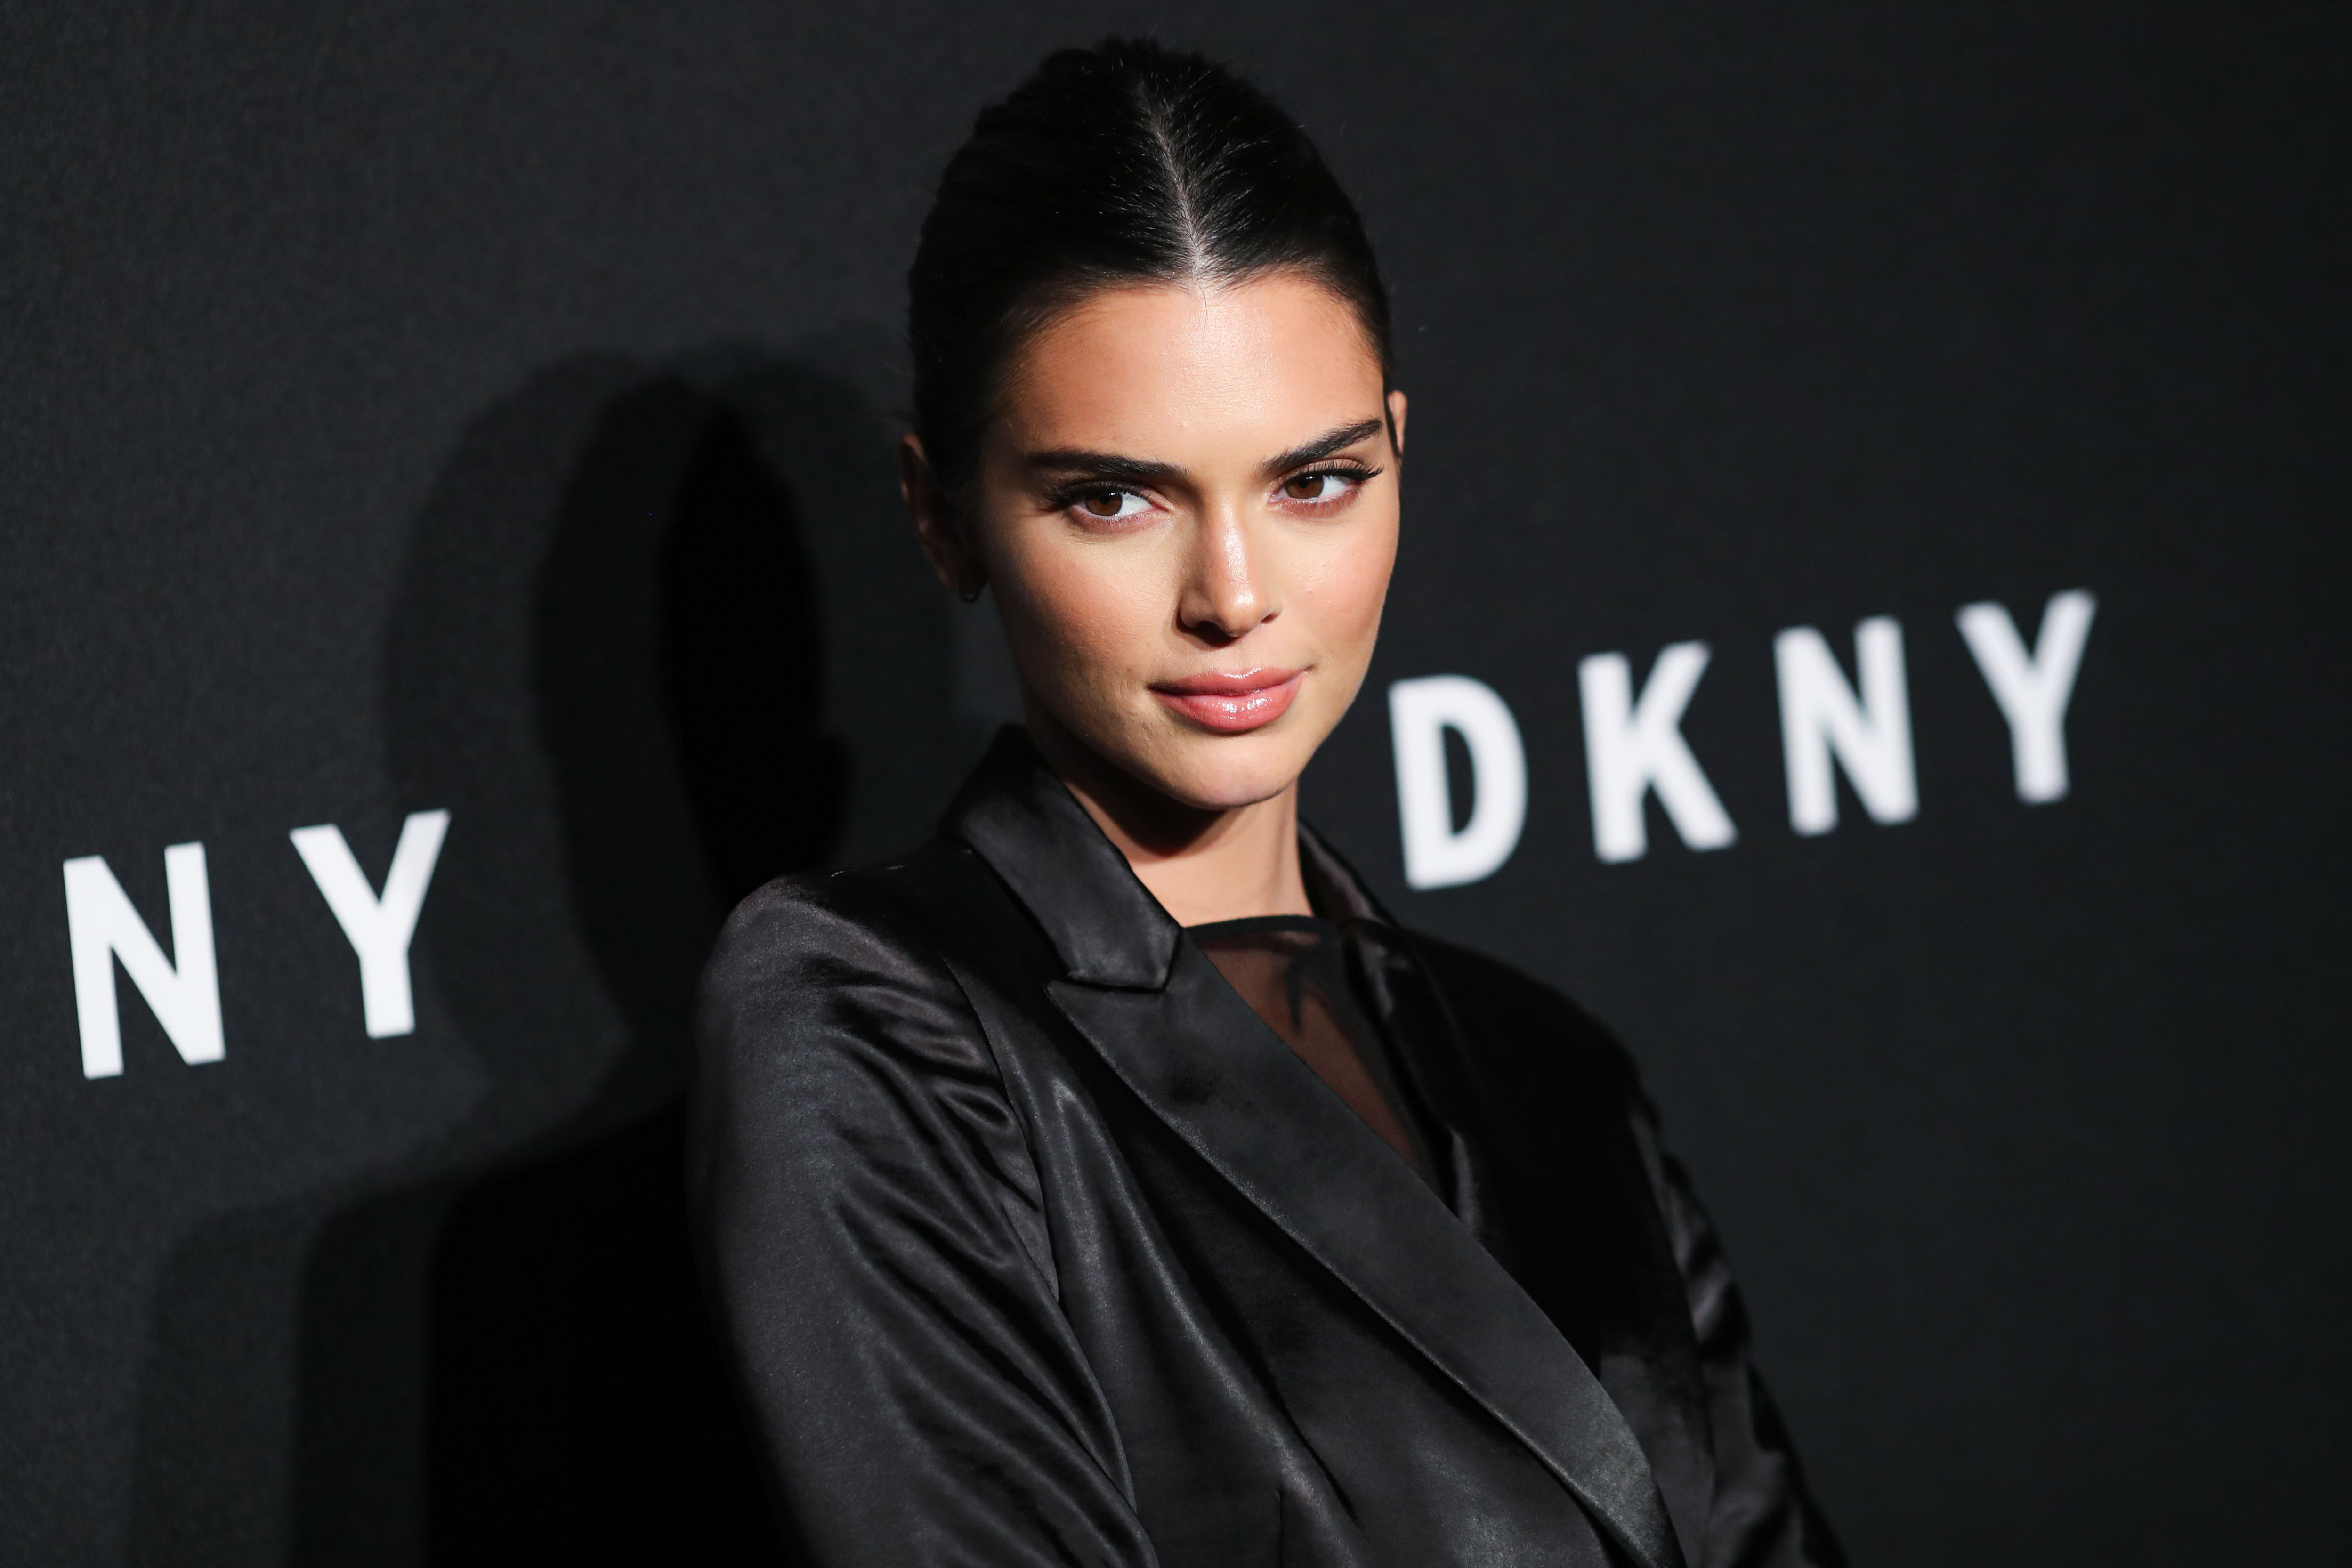 Kendall Jenner arrives at the DKNY 30th Birthday Party Celebration held at St. Ann's Warehouse on September 9, 2019 in Brooklyn, New York City, New York, United States.